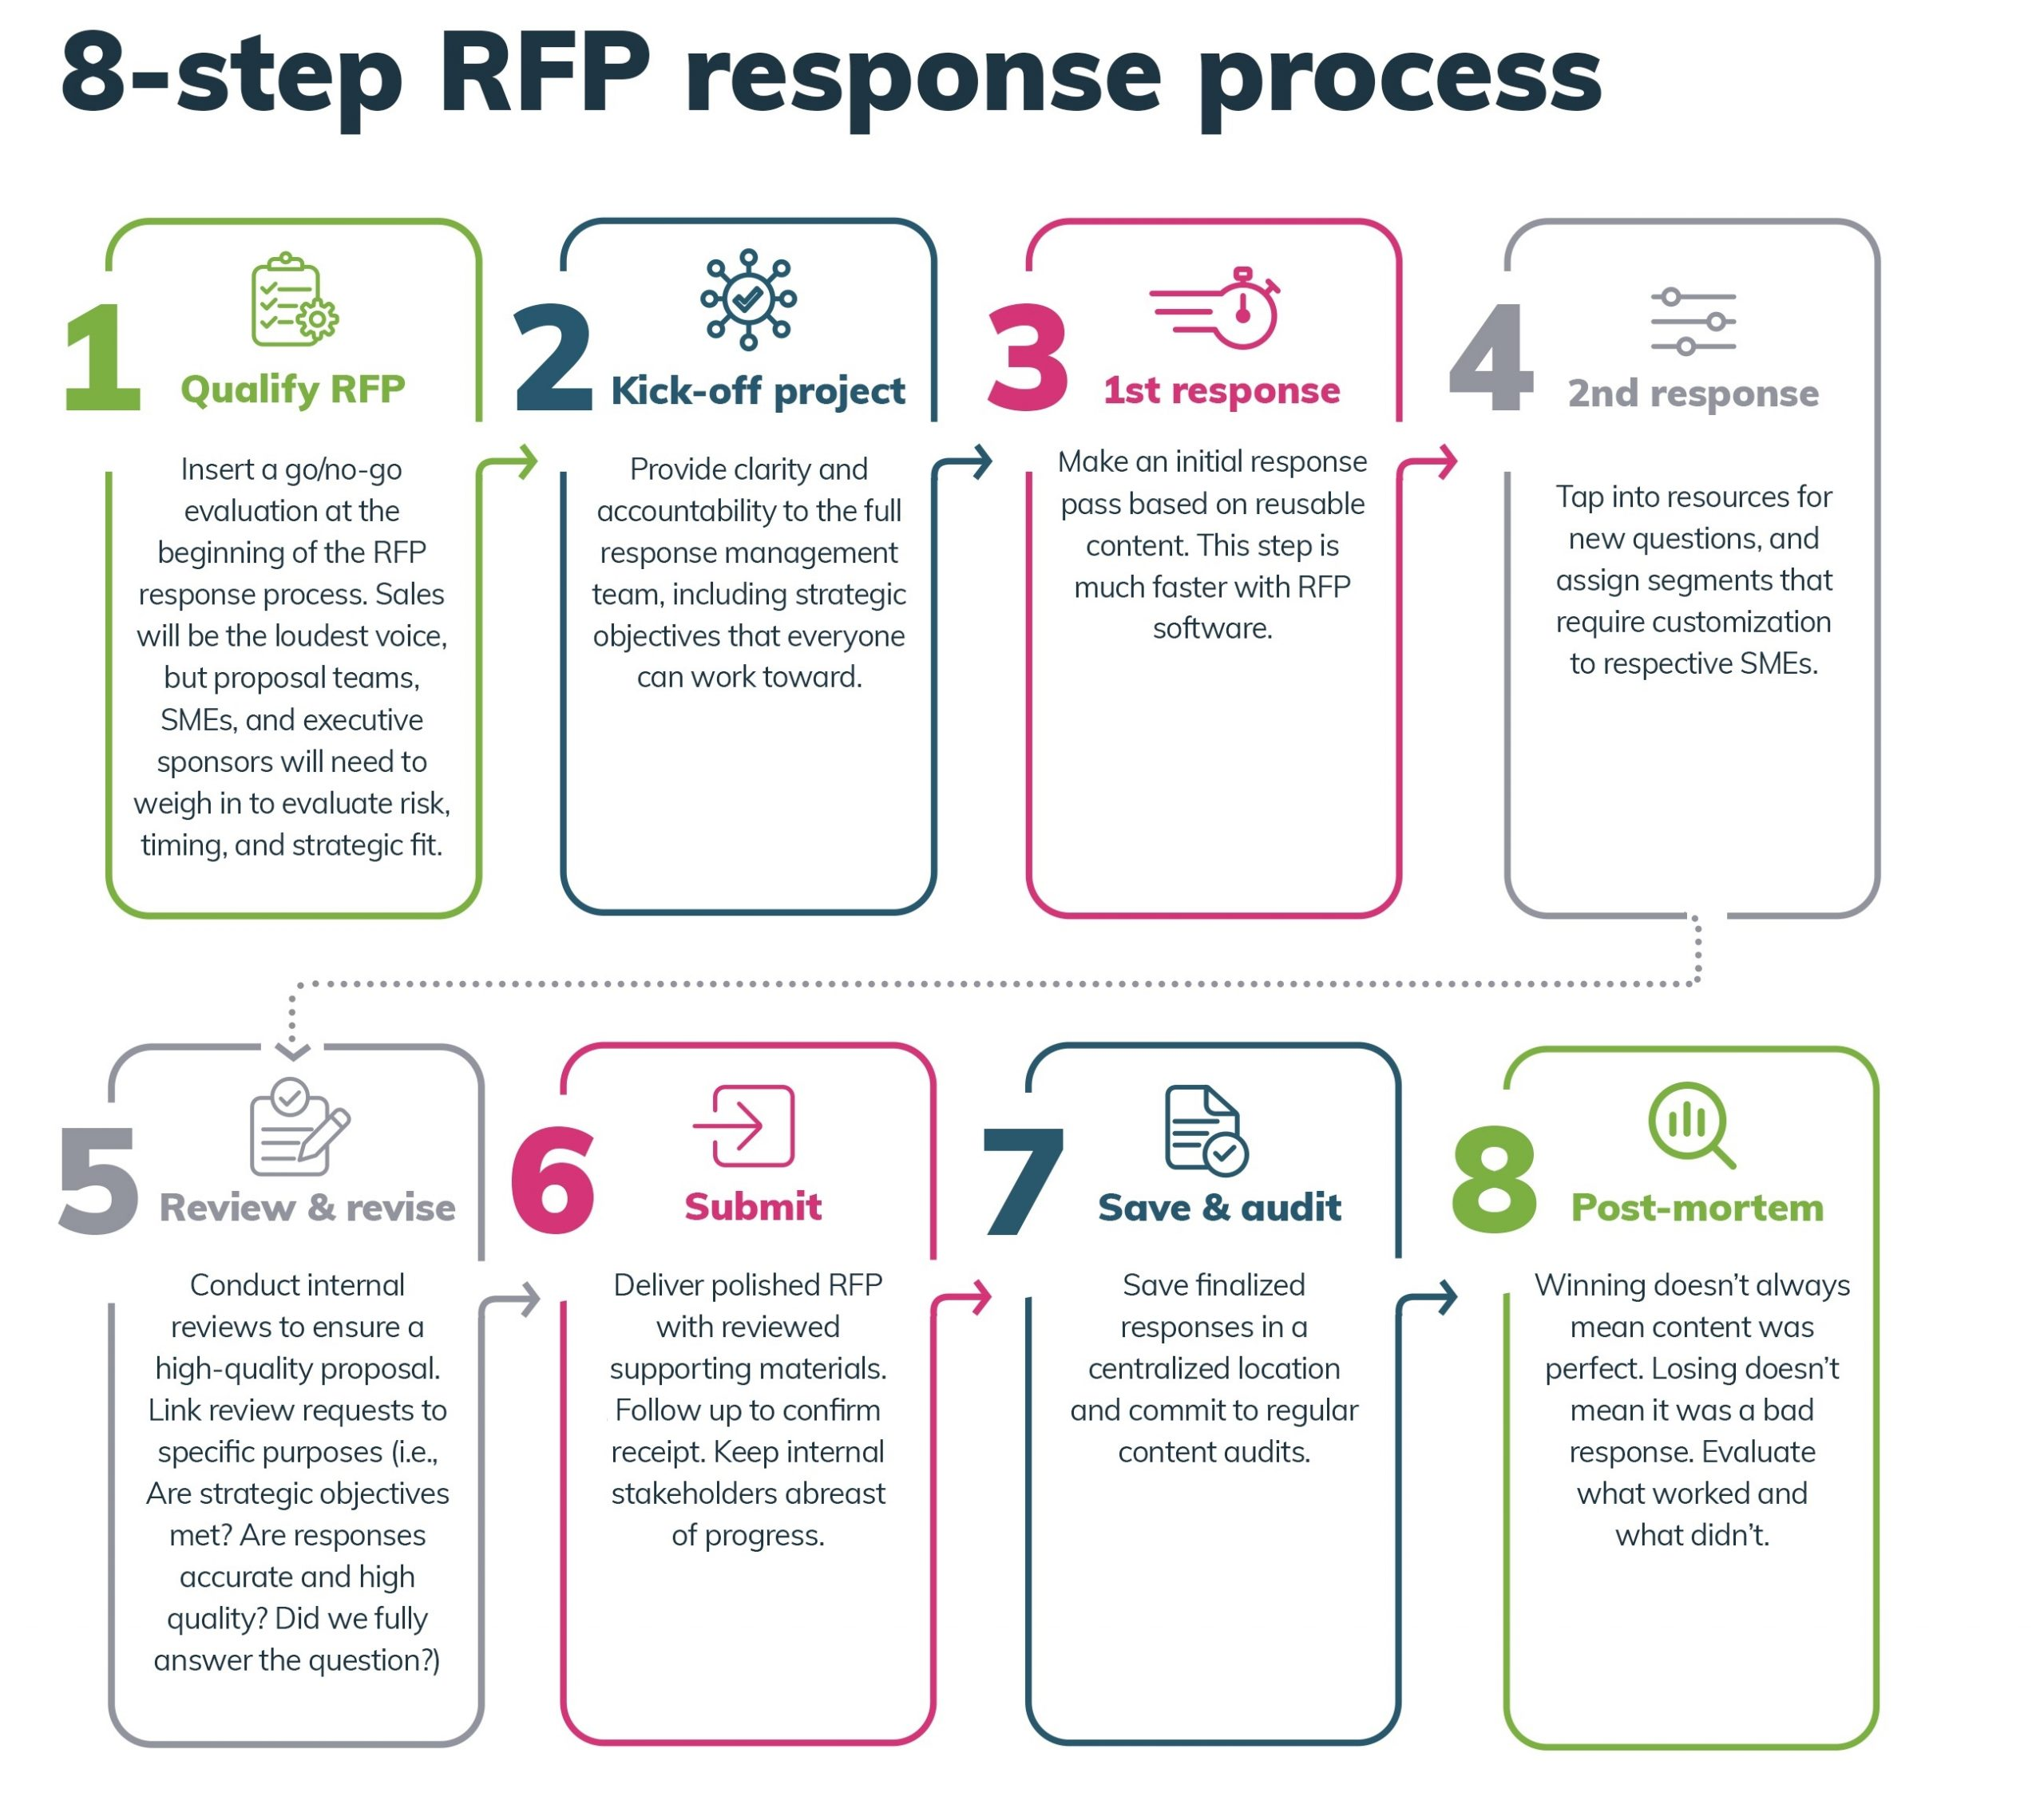 How to Improve Your RFP Response Process in 5 Simple Steps